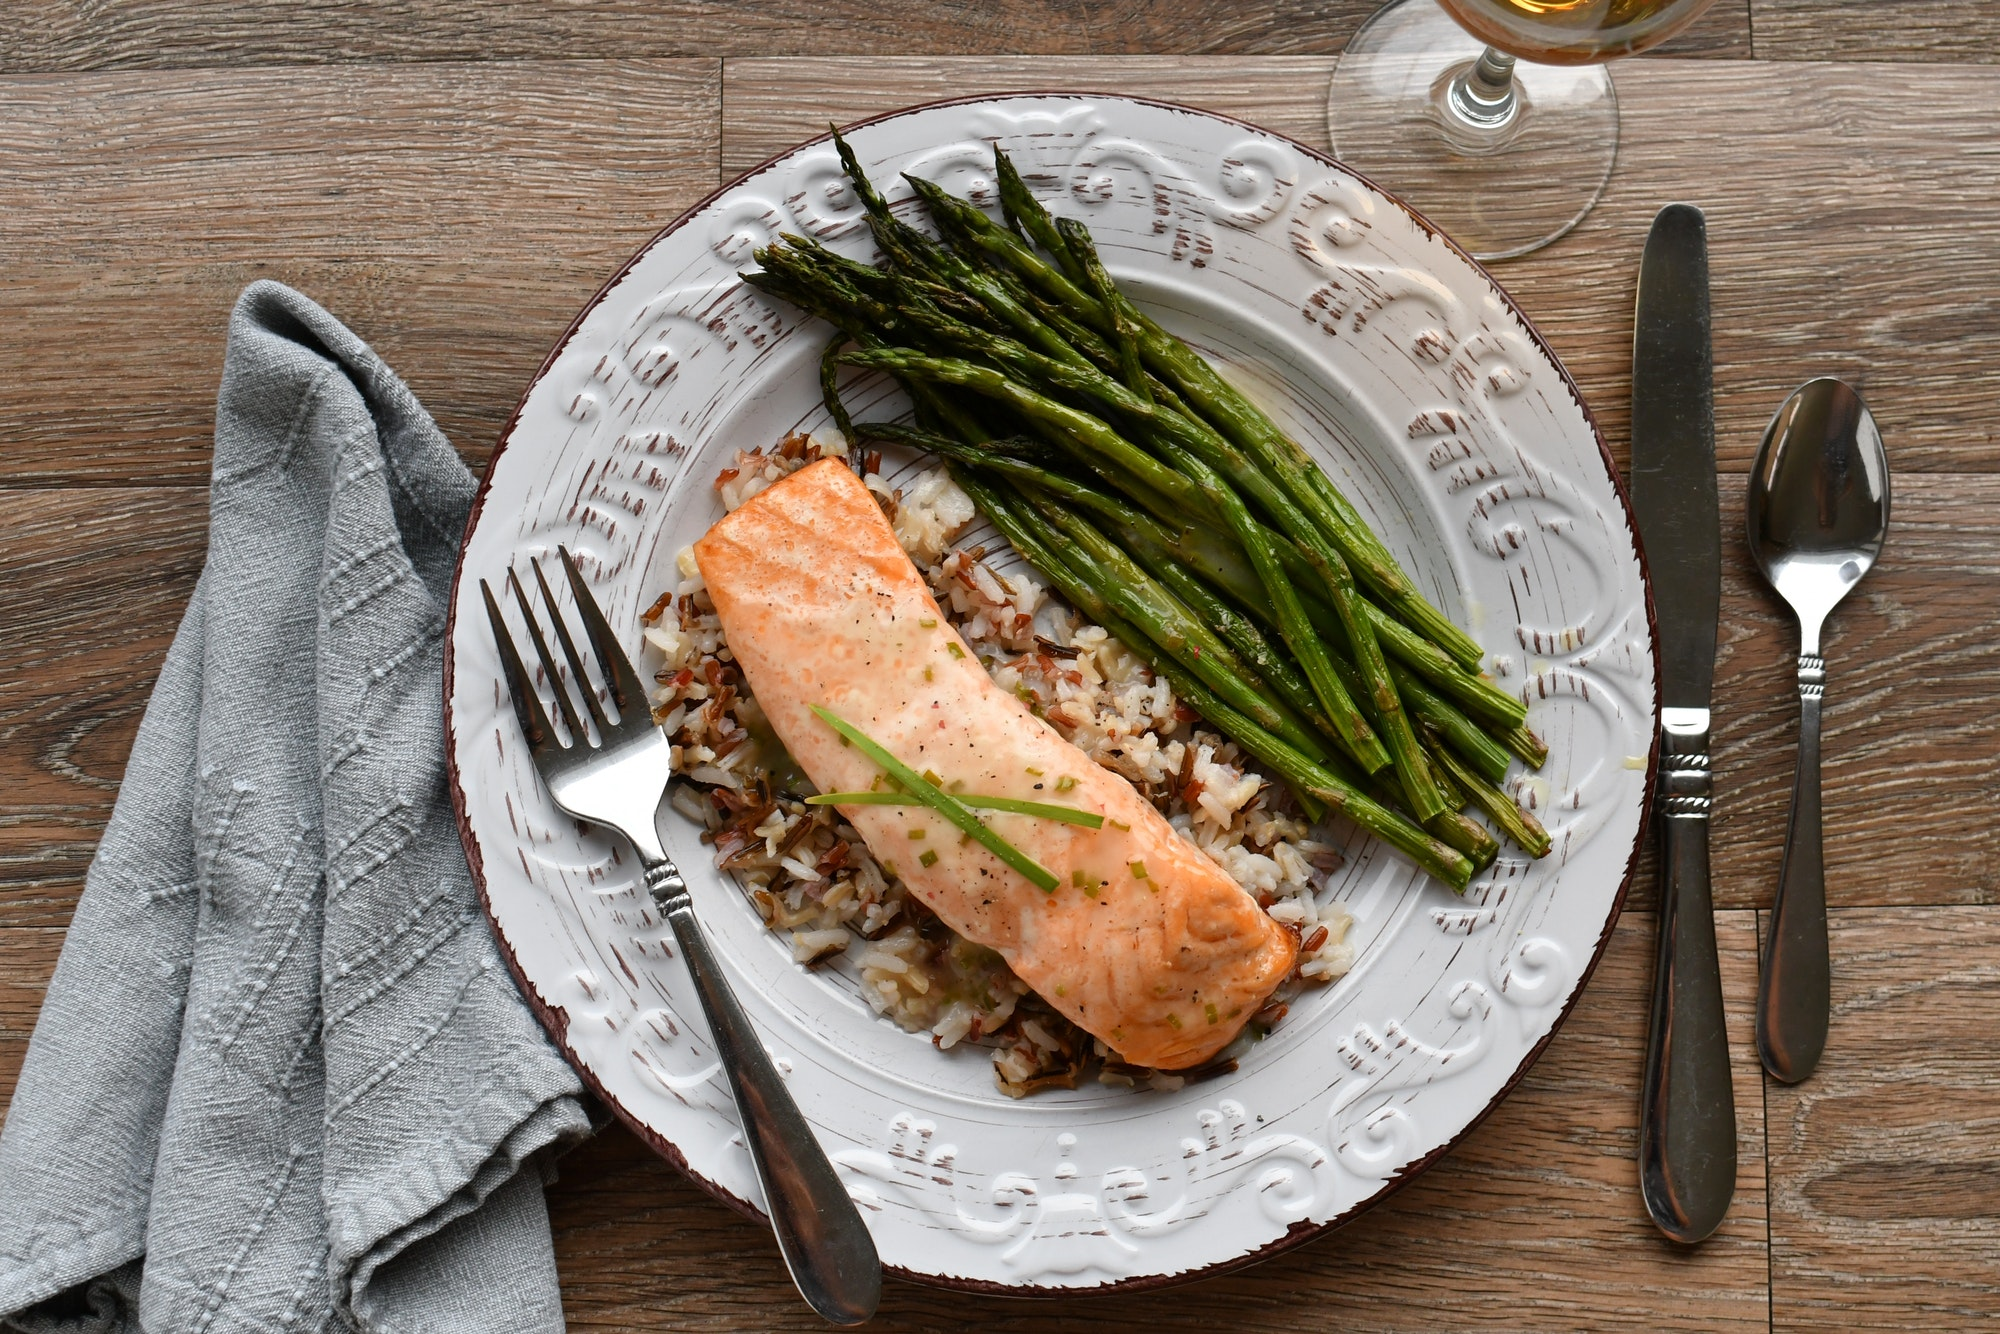 Roasted Salmon with wild rice medley and roasted asparagus topped with a white wine chive sauce